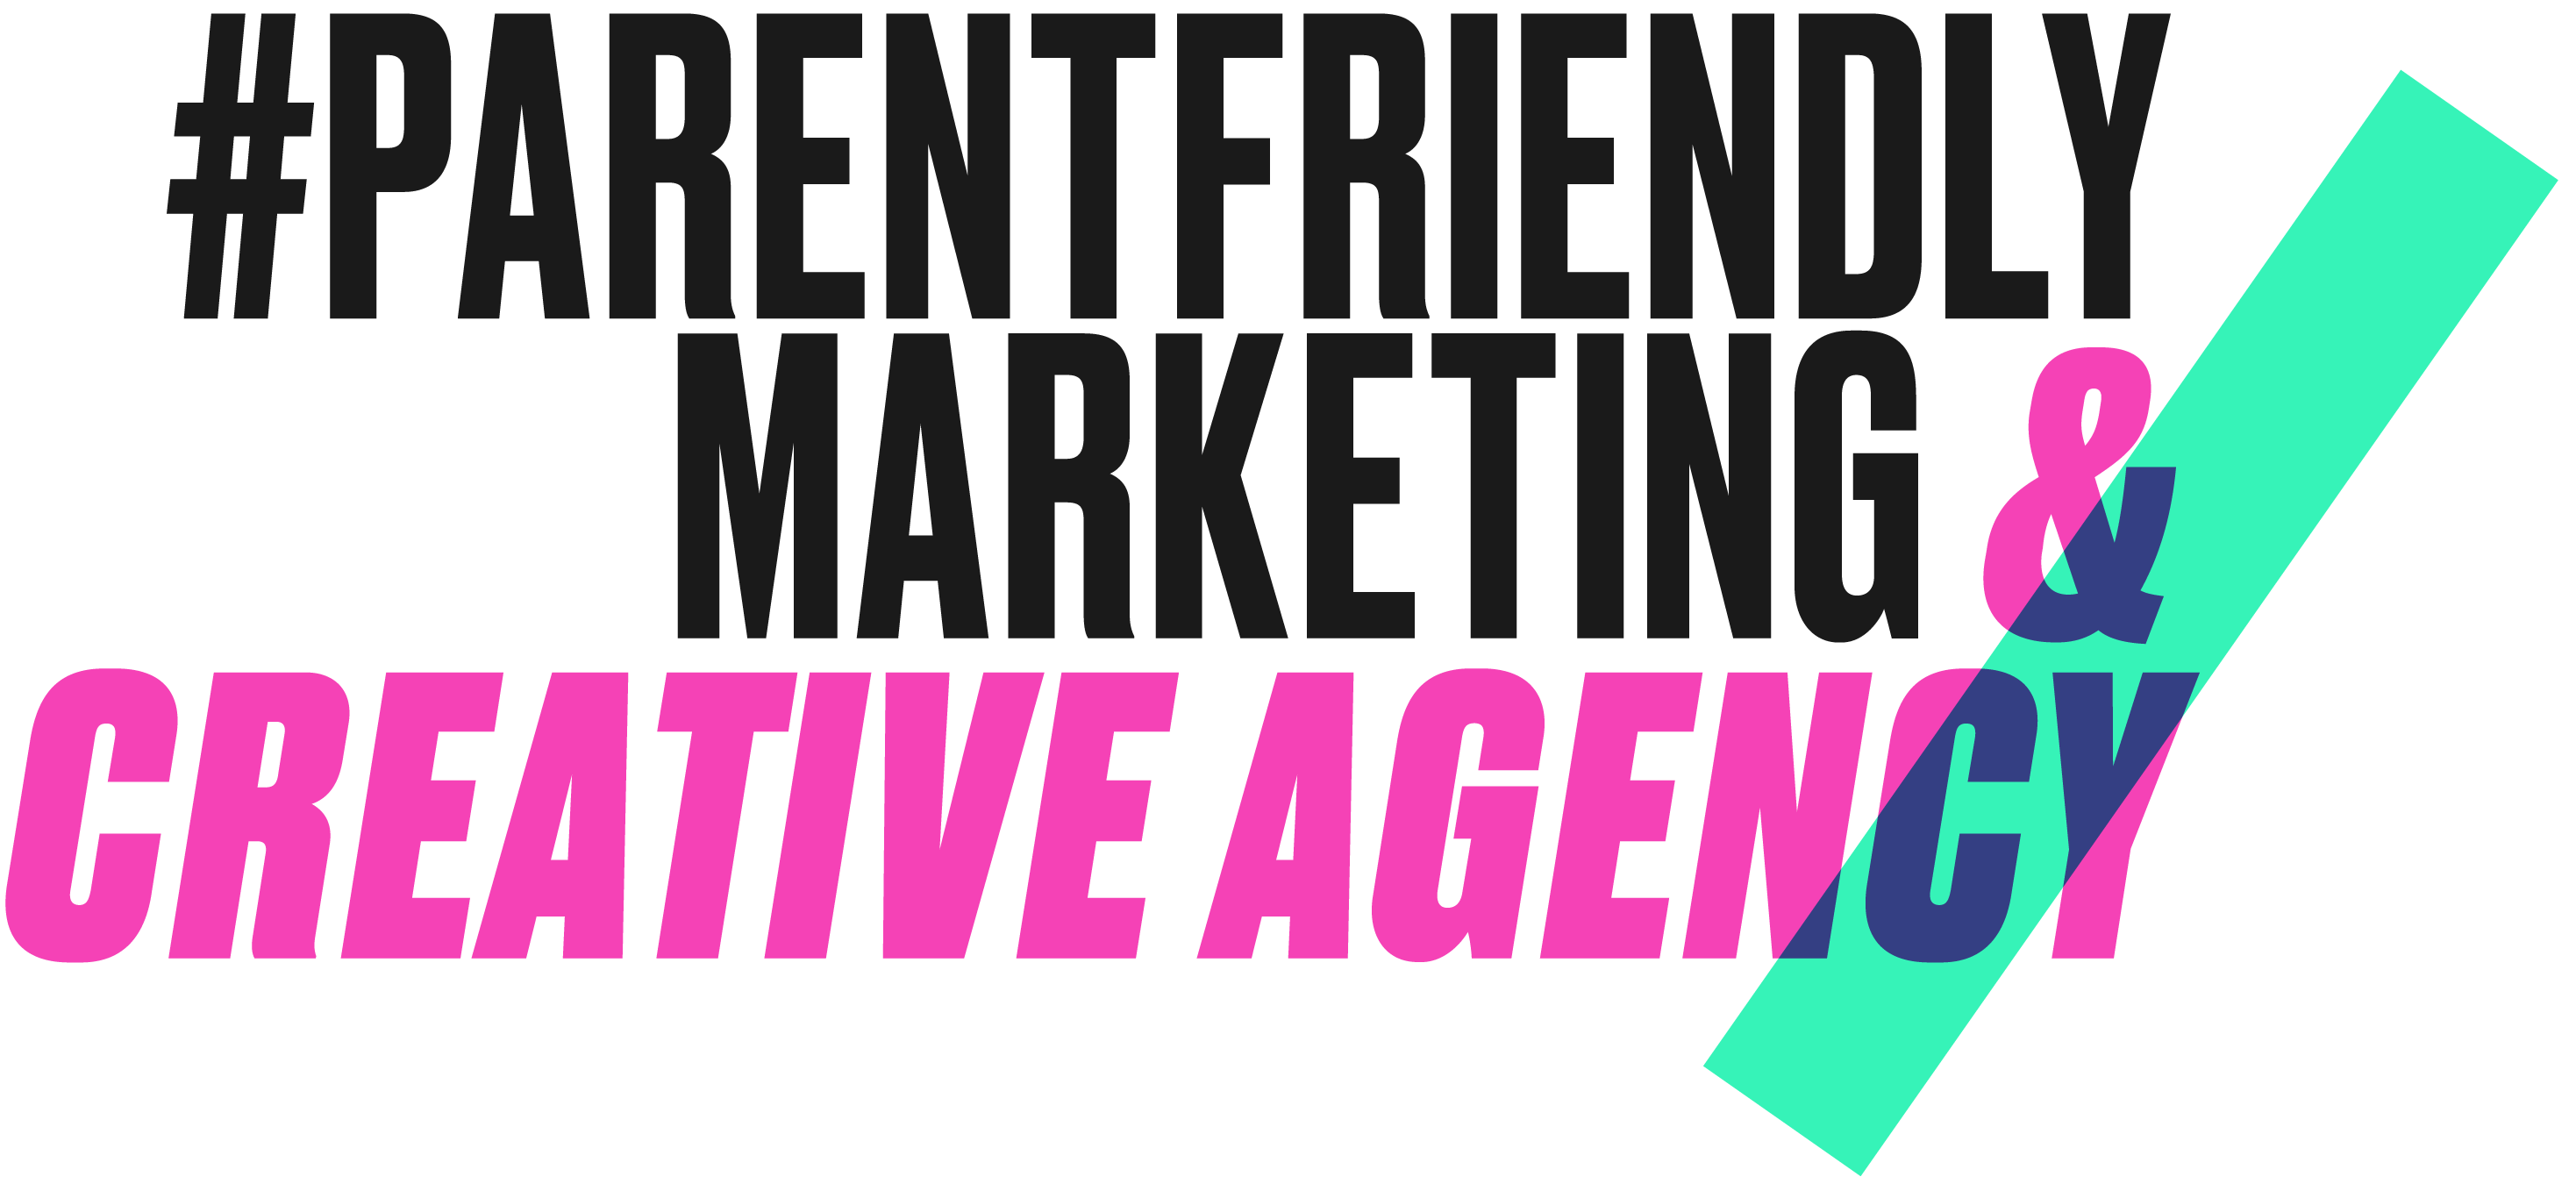 #parentfriendly marketing & creative agency